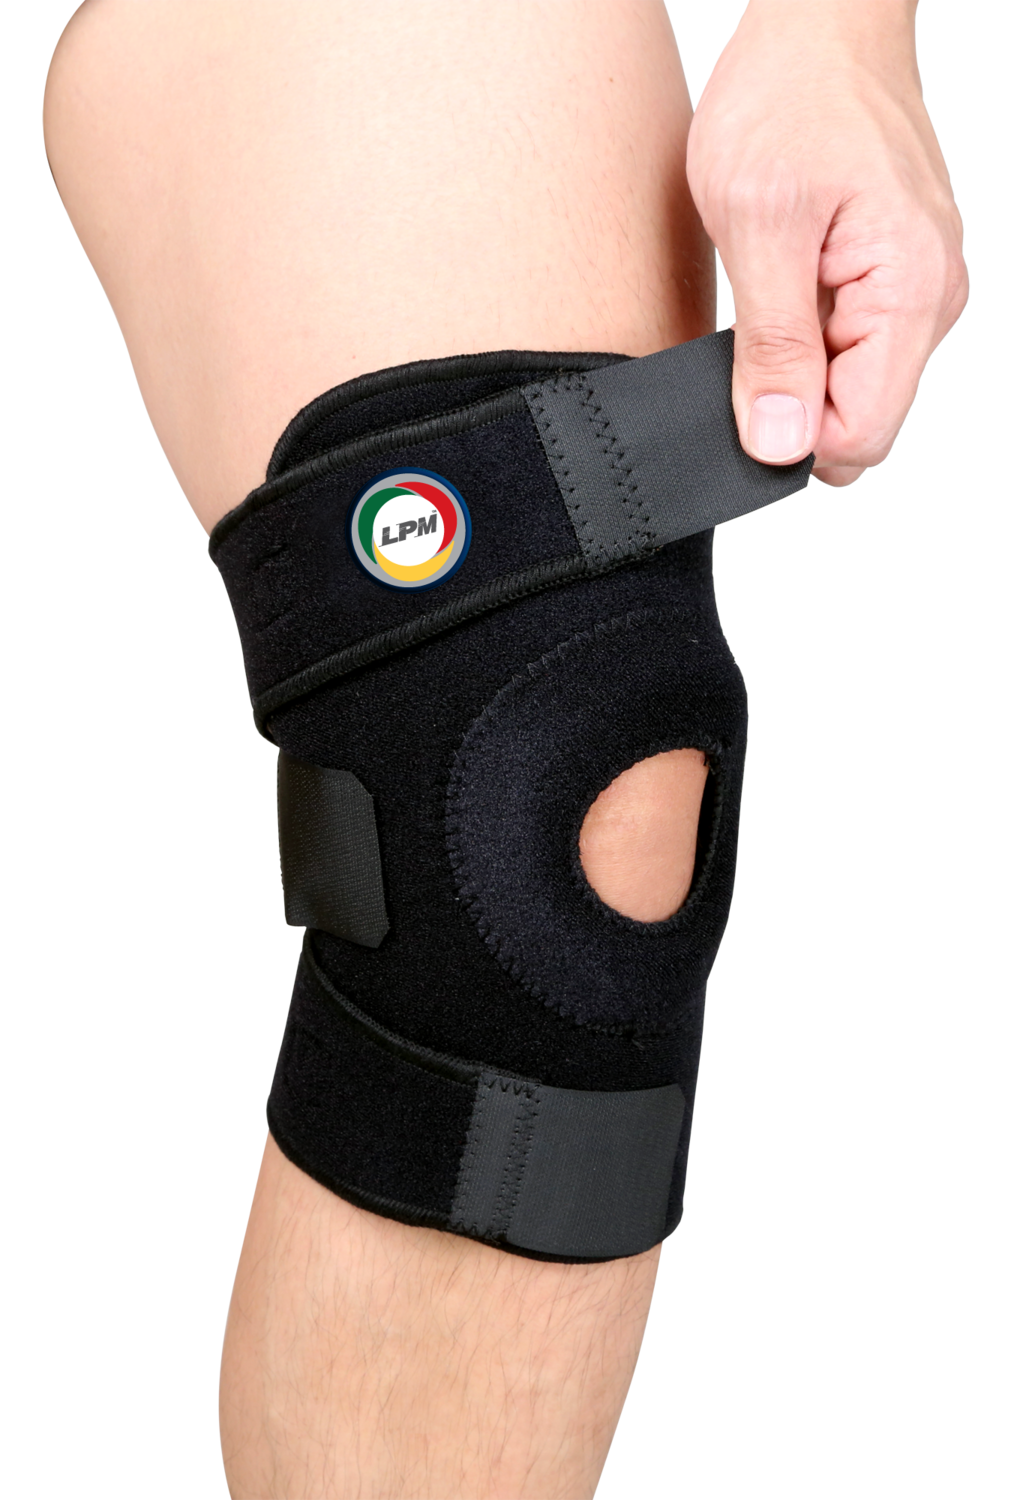 LPM OPEN PATELLA KNEE SUPPORT